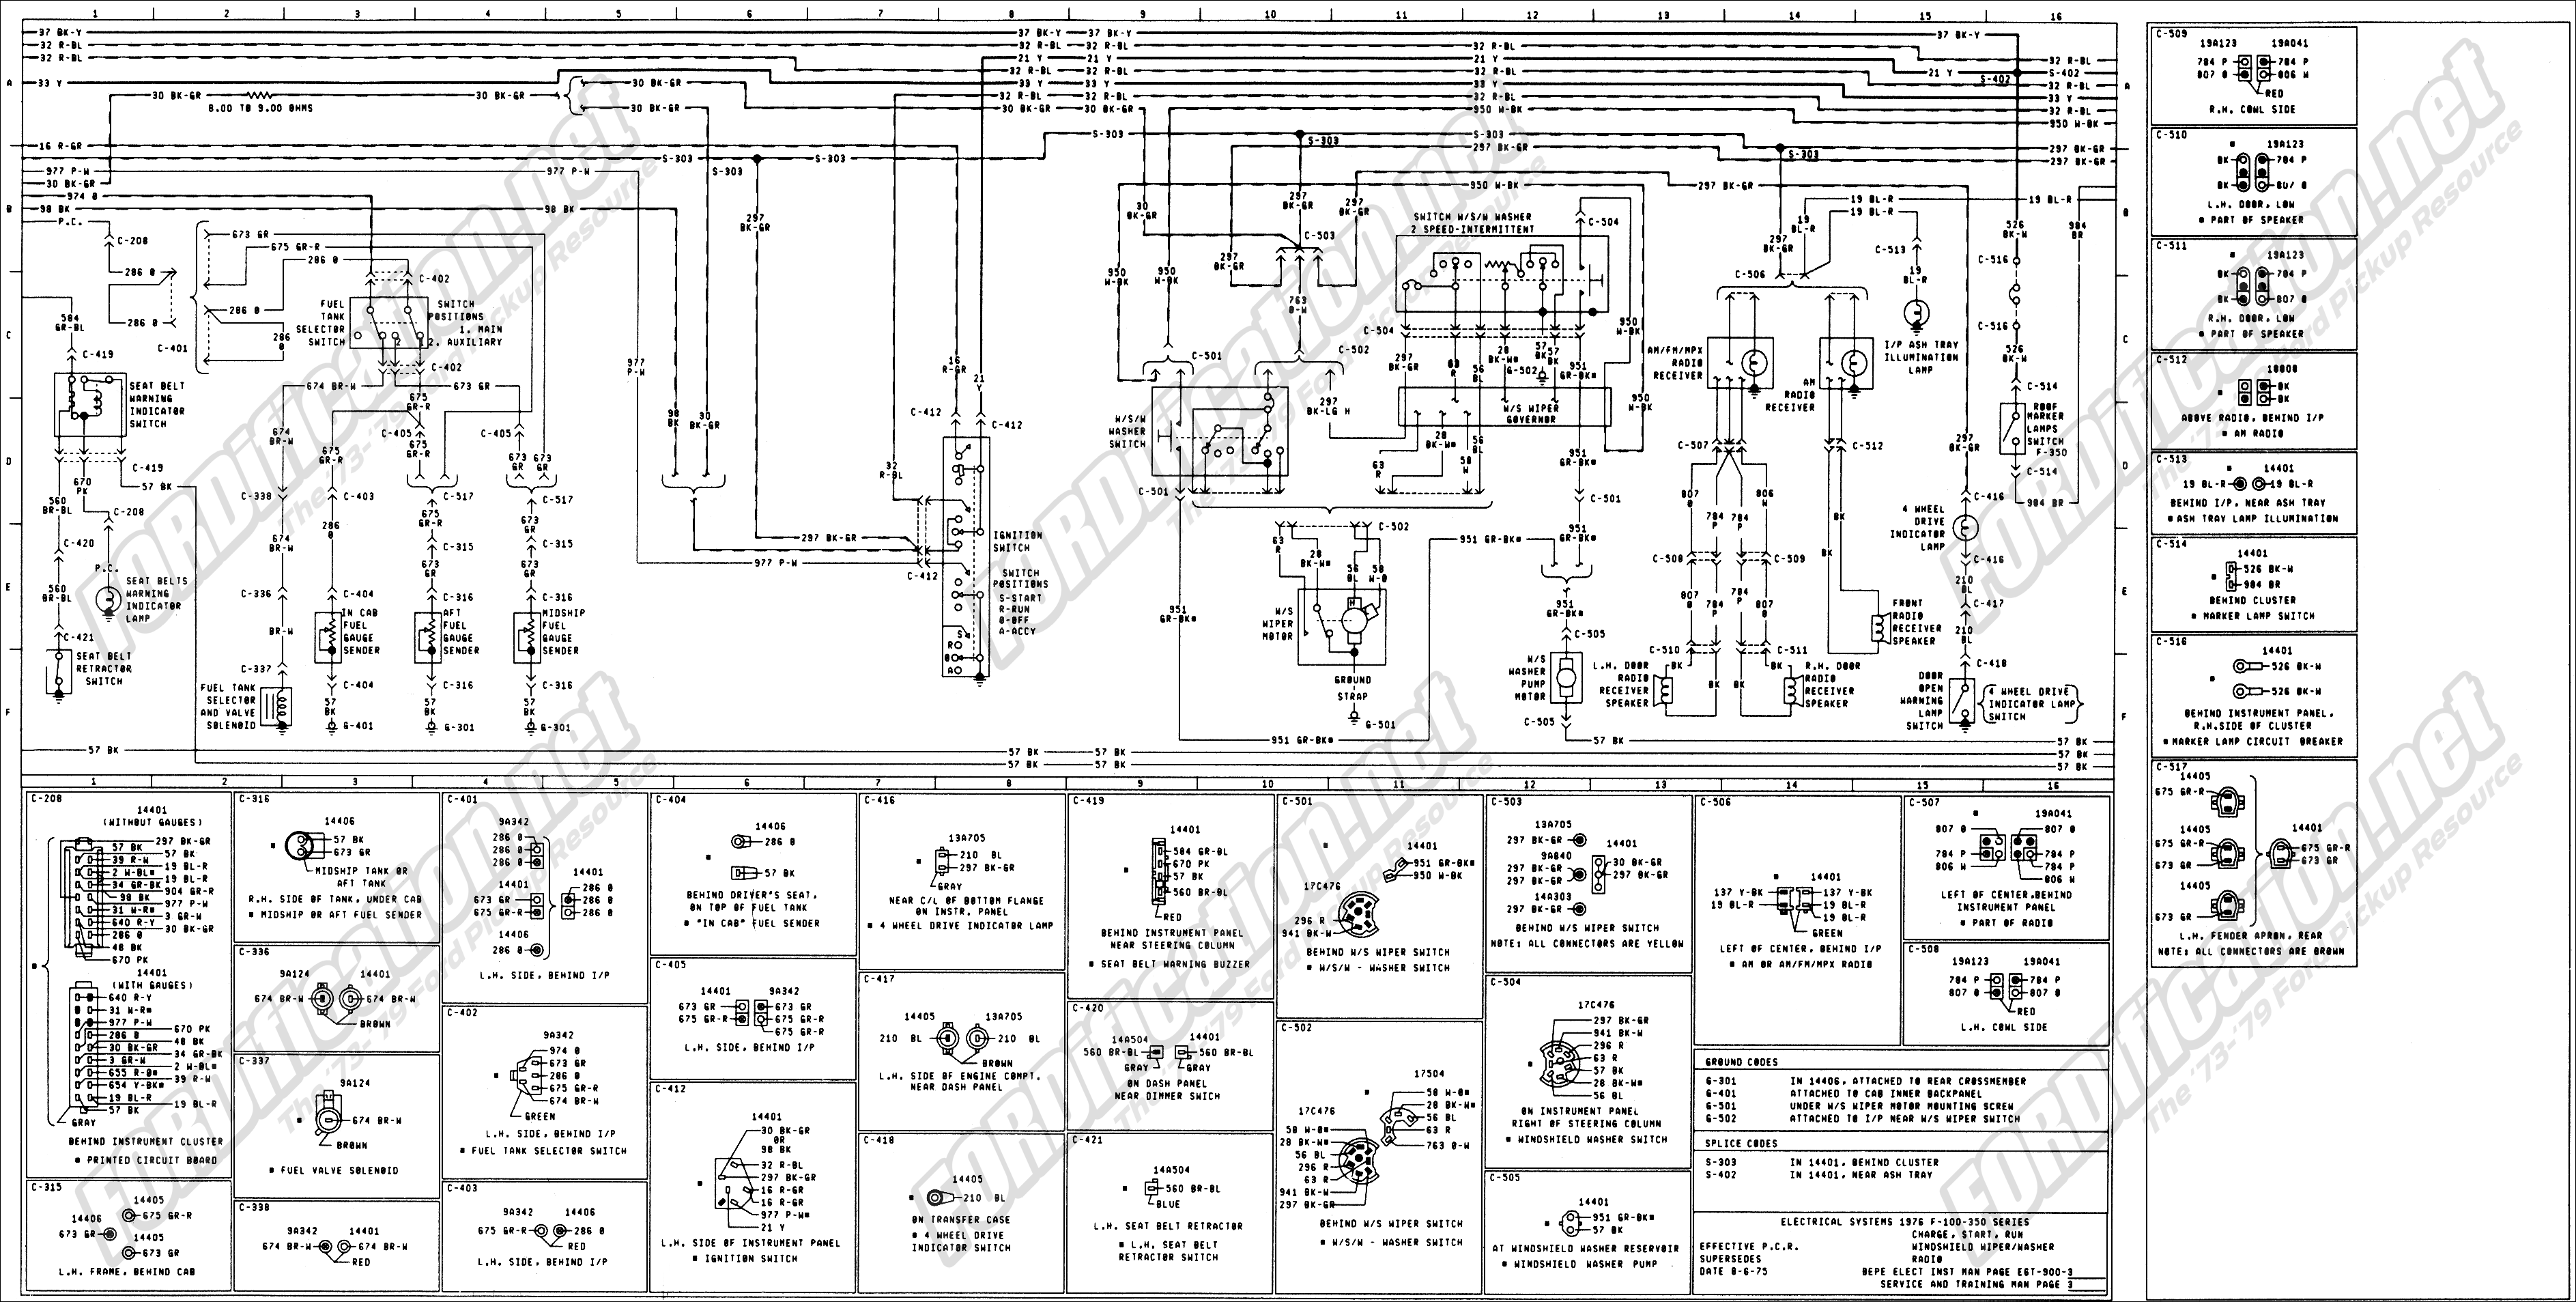 2008 Ford E Series Wiring Diagram also 2005 Chevy Equinox Wiring Diagrams in addition 92 Chevy Starter Wiring Diagram further WiringByColor moreover Ford 8n Ignition Wiring Diagram. on ford econoline conversion van